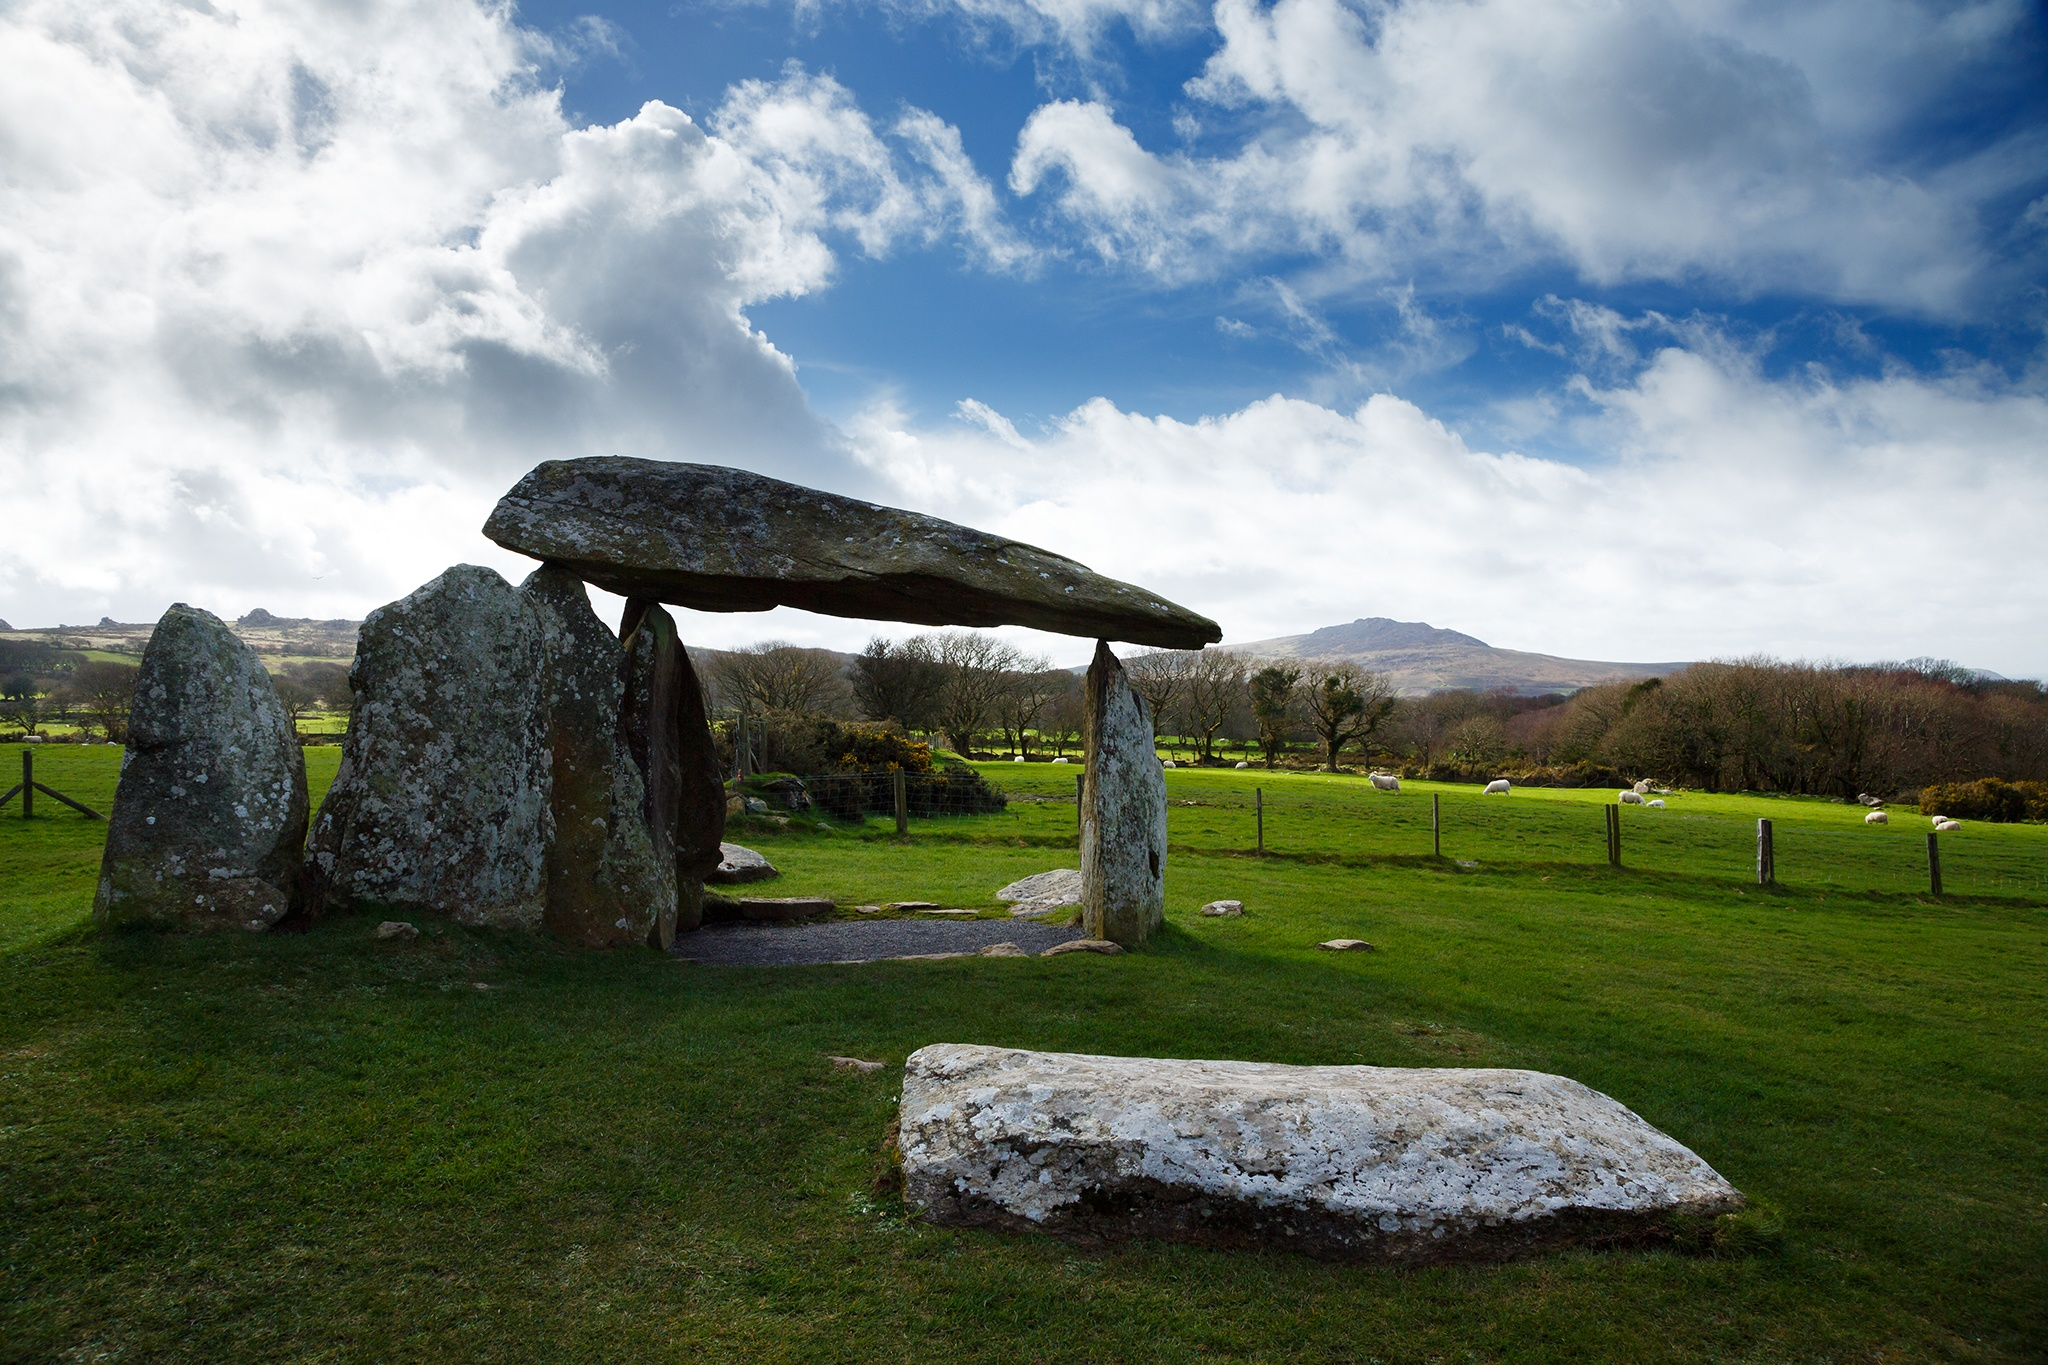 Pentre Ifan Neolithic Burial Chamber, Pembrokeshire, Wales. The Dolmen's huge capstone is delicately balanced on three uprights. Once known as Arthurs' Quoit, Pentre Ifan means Ivan's Village. This monument, dating back to about 3500 BC and unusually oriented north-south, stands on the slopes of a ridge commanding extensive views over the Nevern Valley. The capstone weighs over 16 tons; it is 5m (16ft 6in) long and 2.4m (8ft) off the ground.